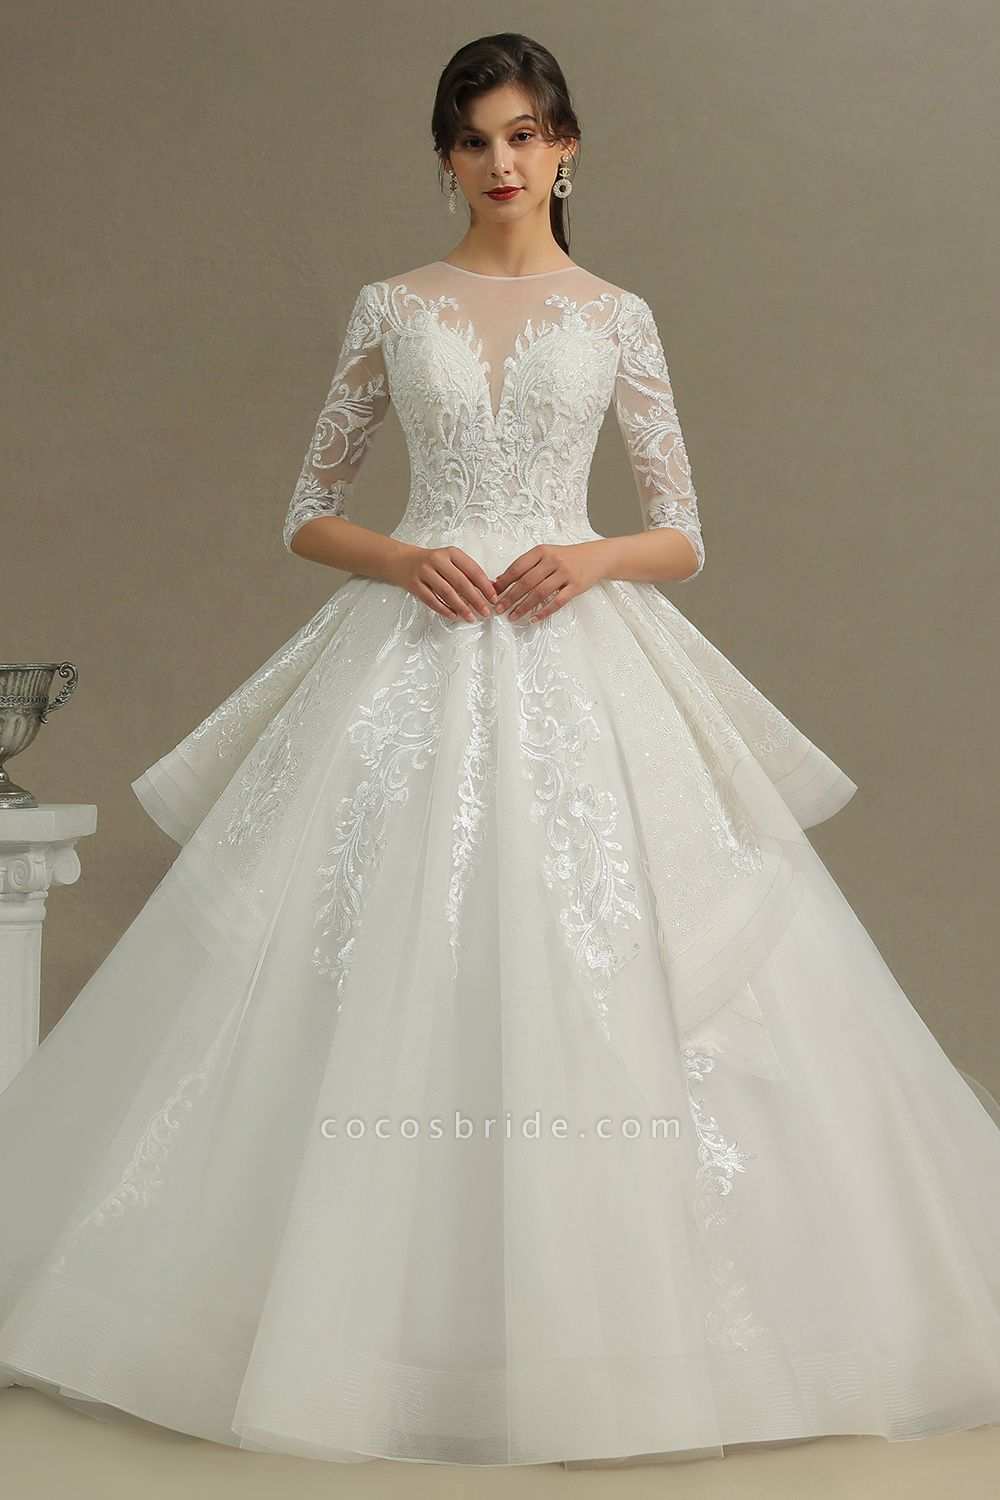 CPH227 Luxury Floral Lace Bridal Gown Crew Neck Long Sleeves Aline Luxury Wedding Dresses